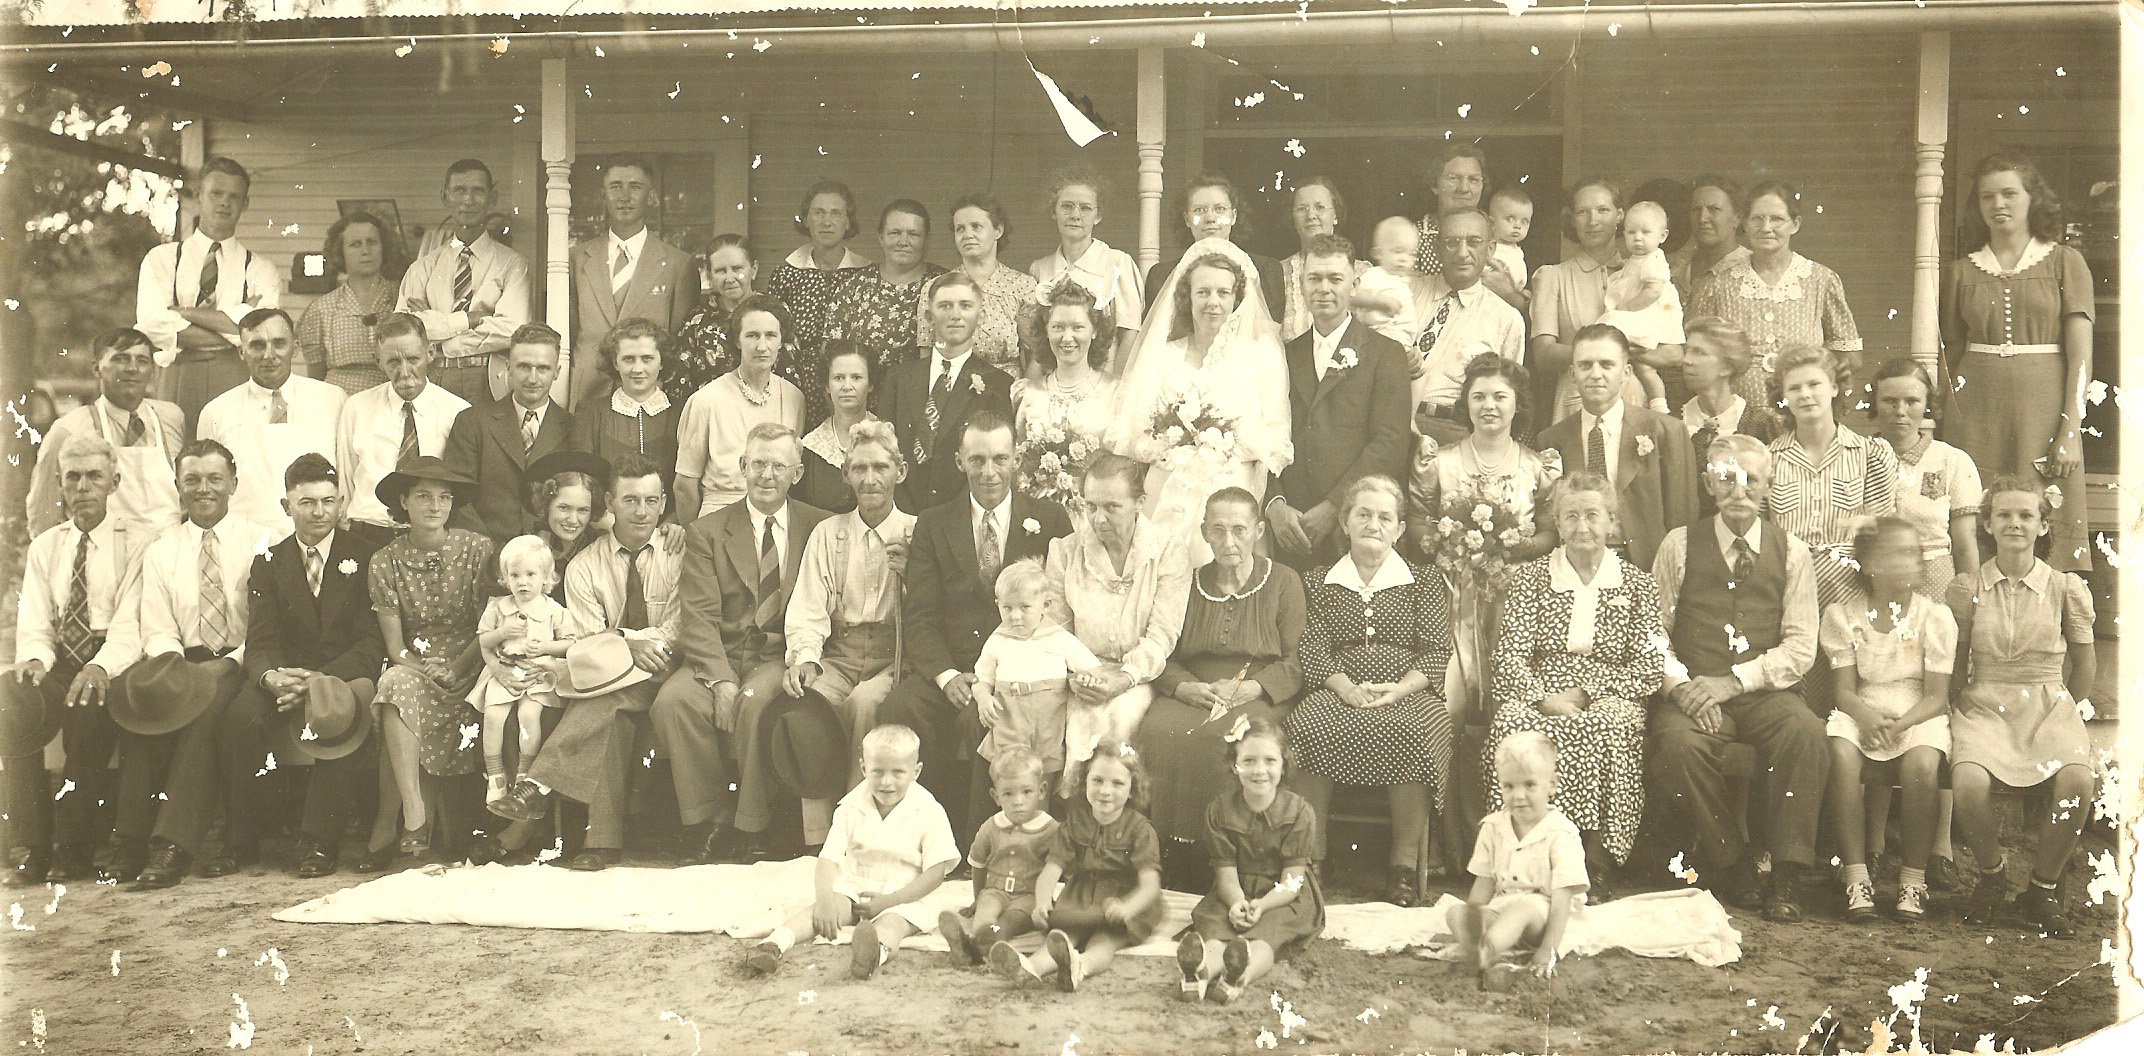 9-7-41parents wedding